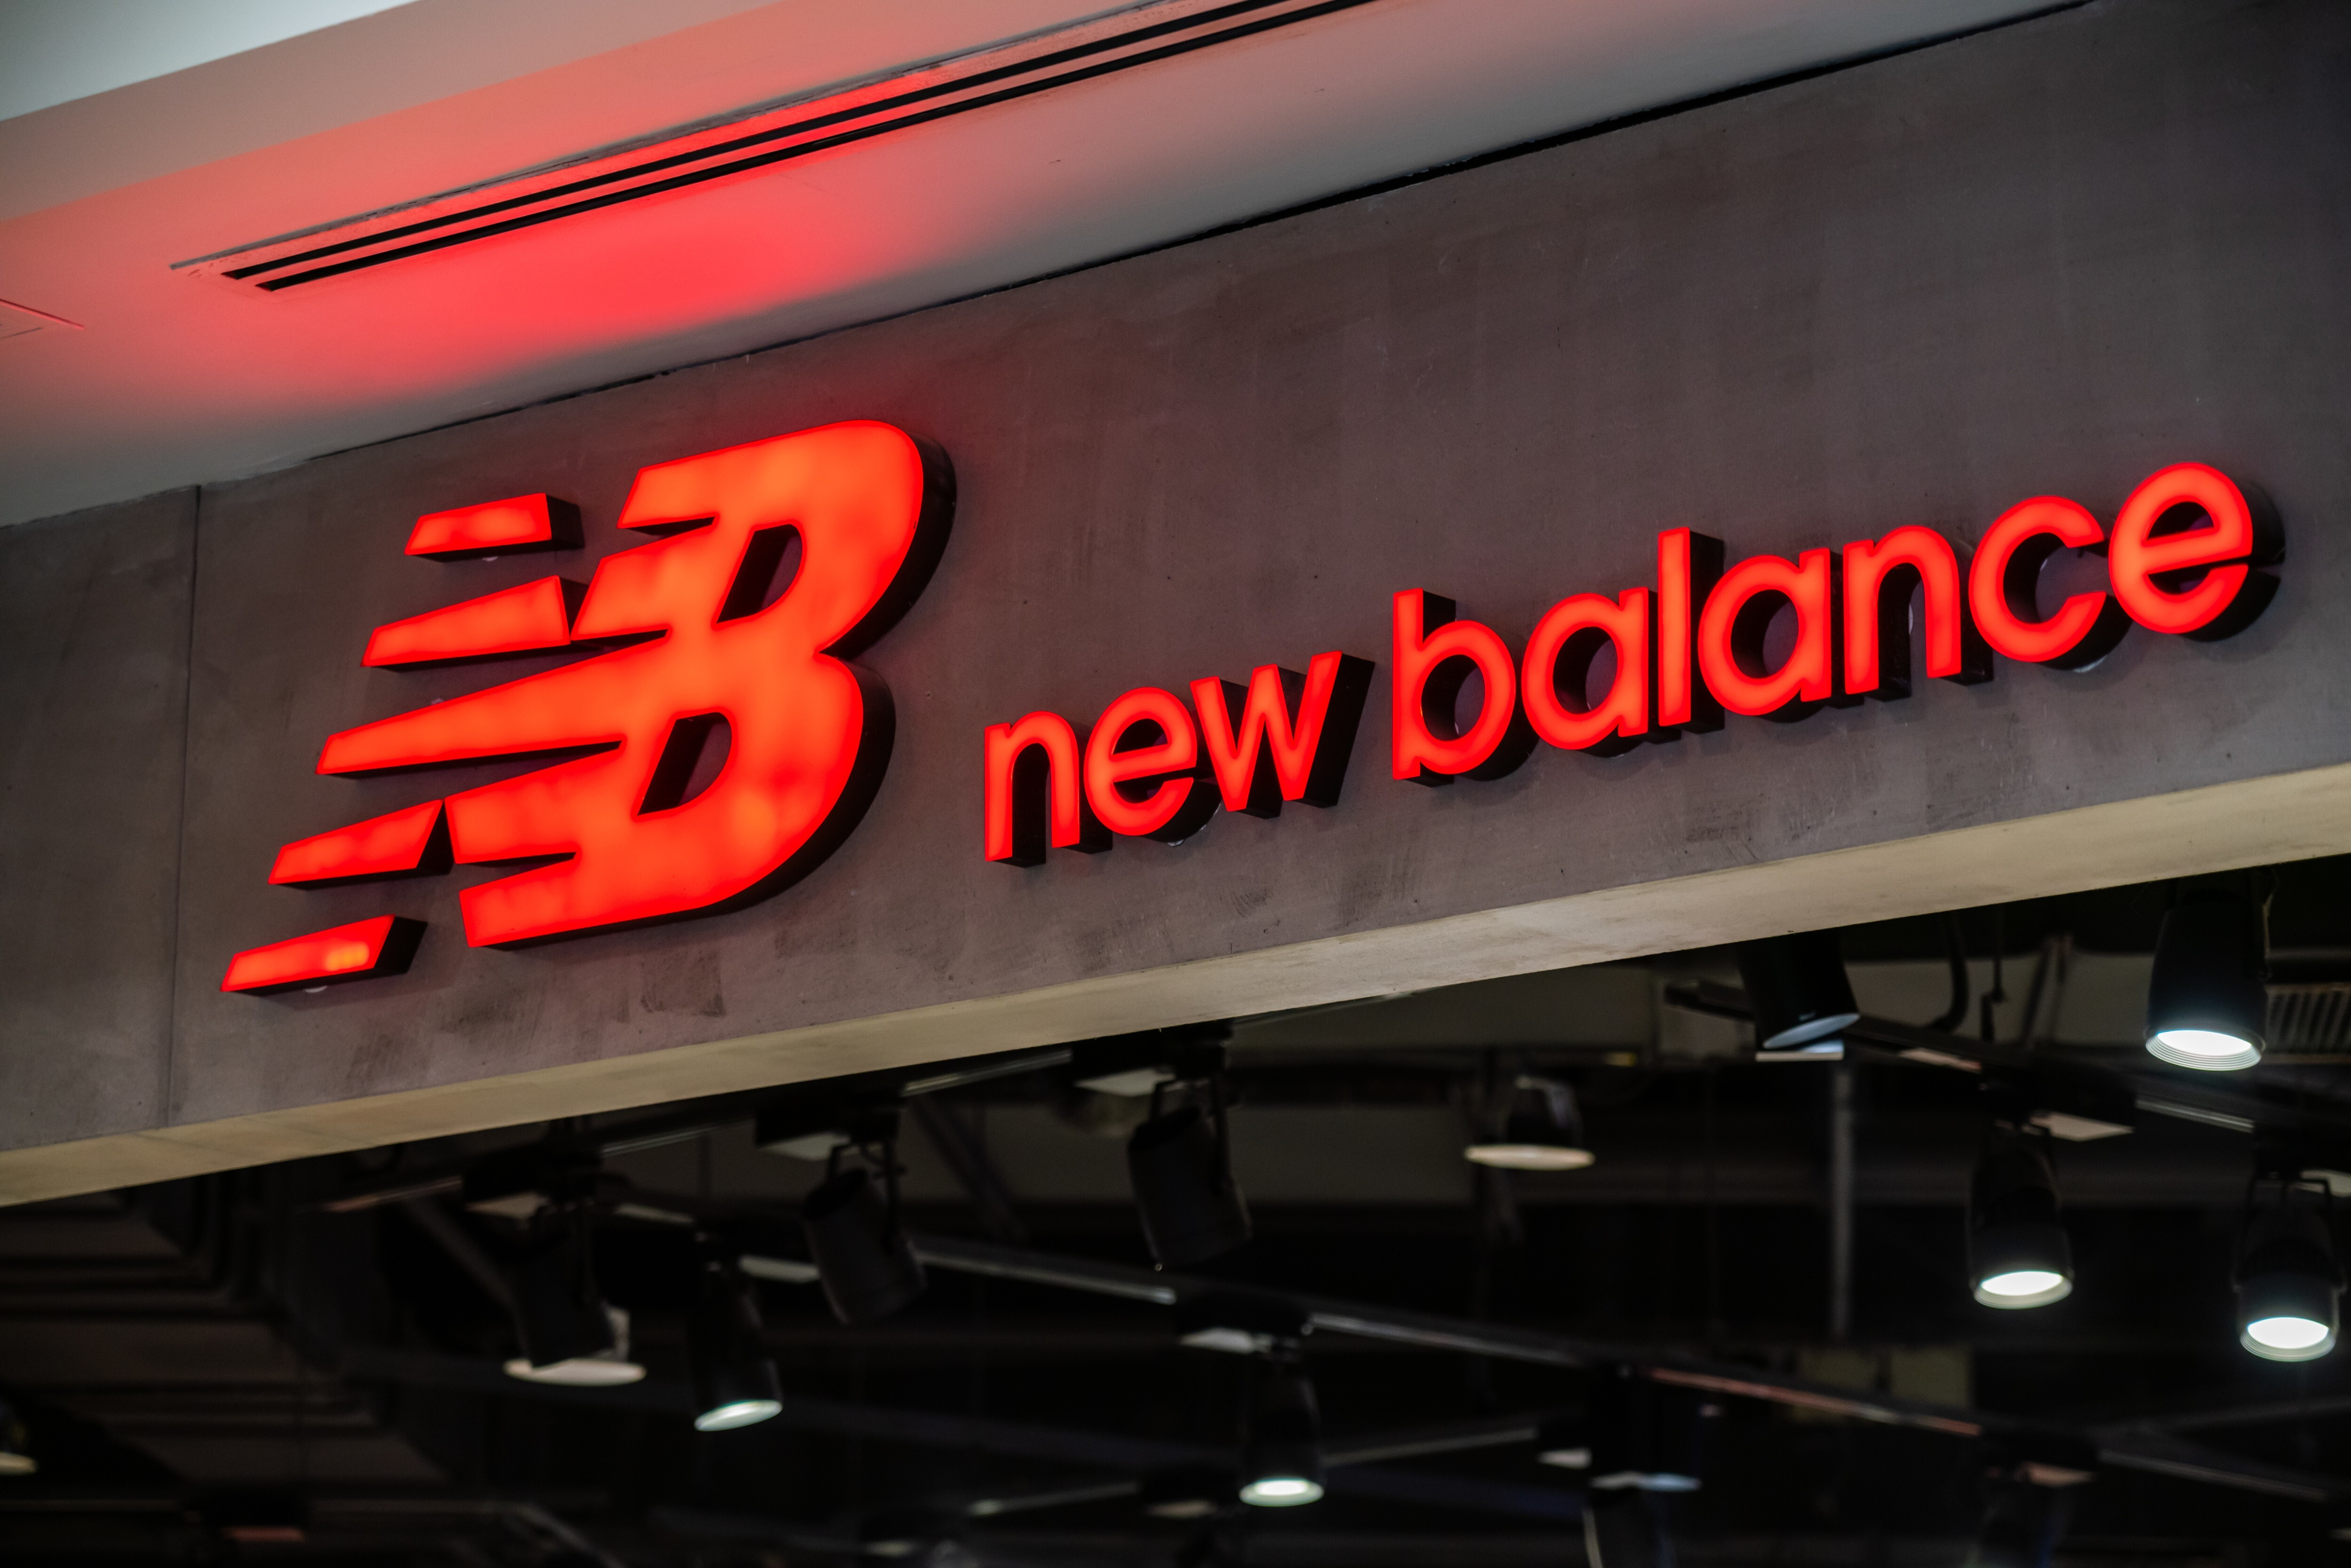 lucha formación Mariscos  New Balance wins copyright case against Chinese firm over 'N' logo, wins  US$1.54 million | South China Morning Post